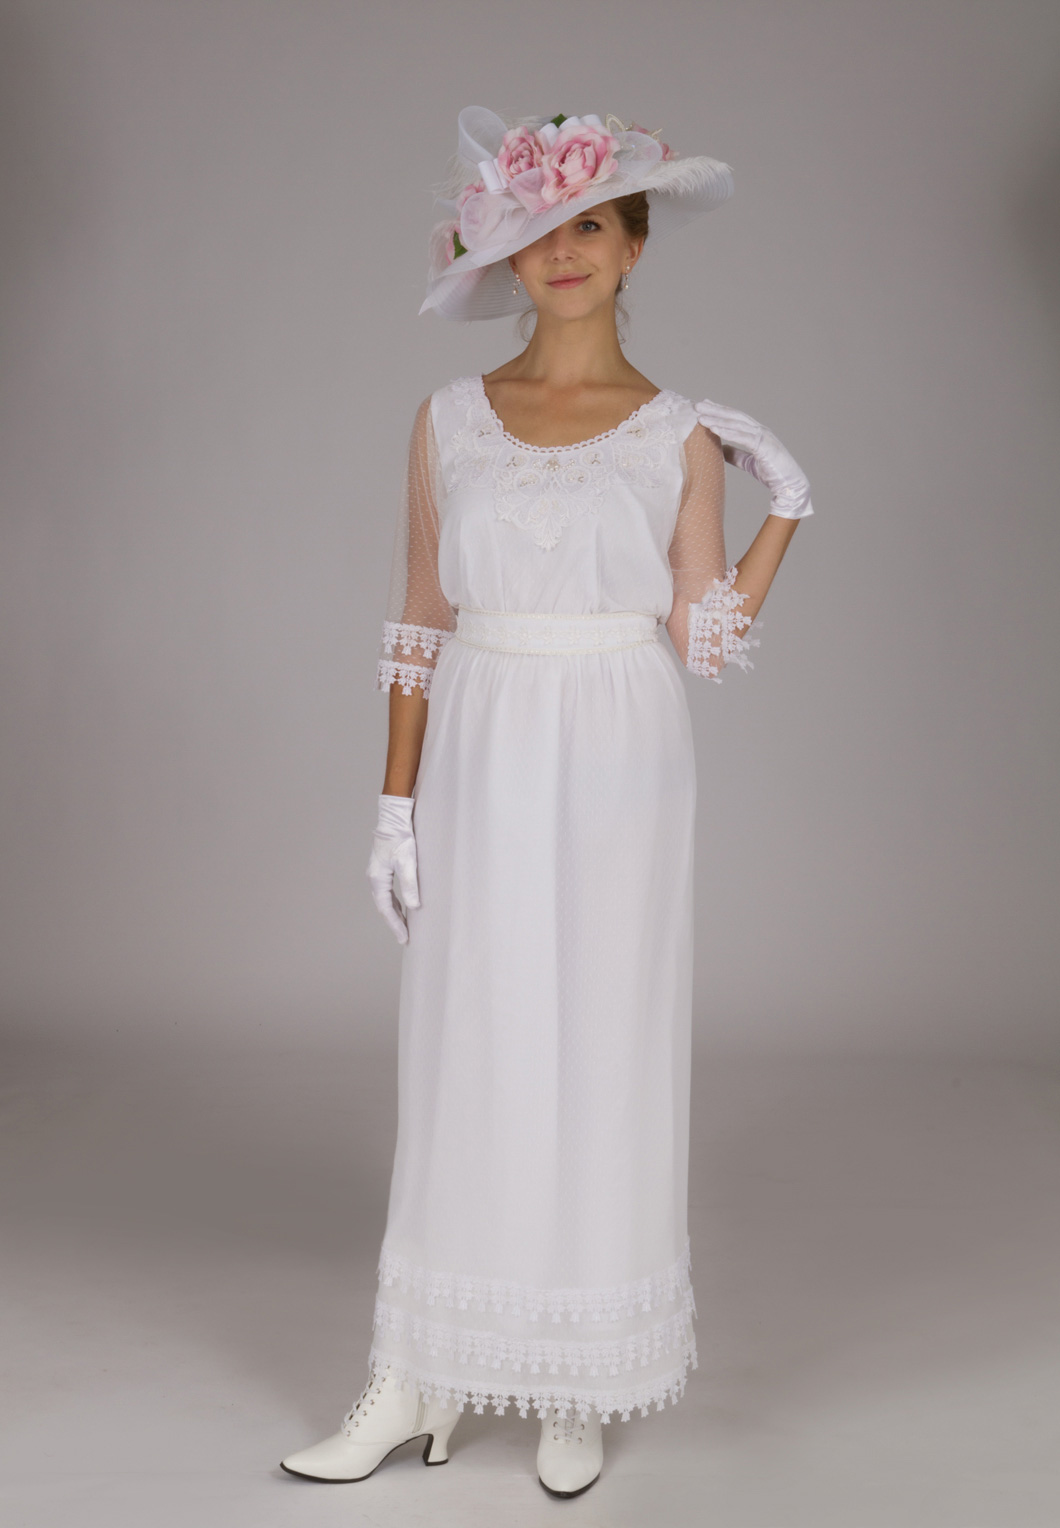 White Edwardian Dress Recollections